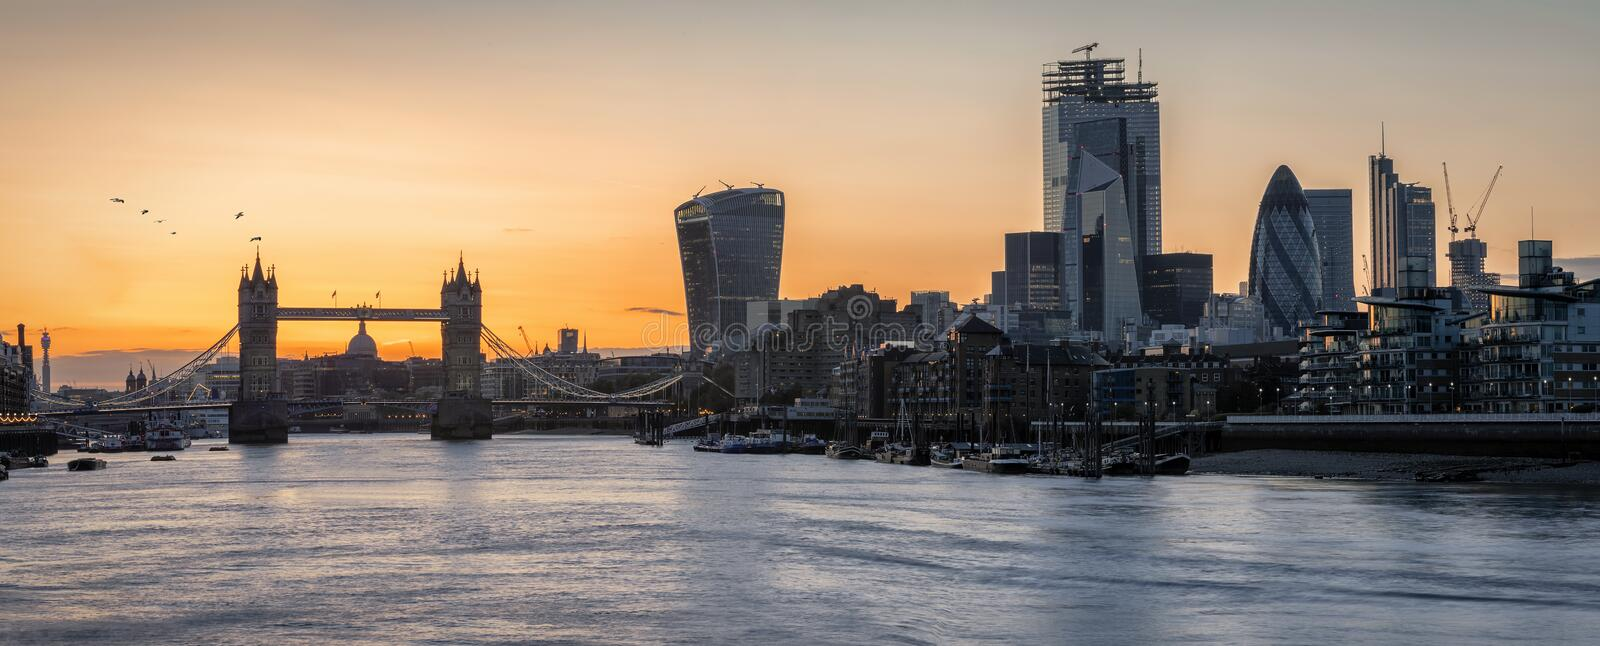 Panorama of the skyline of London during sunset time stock photos